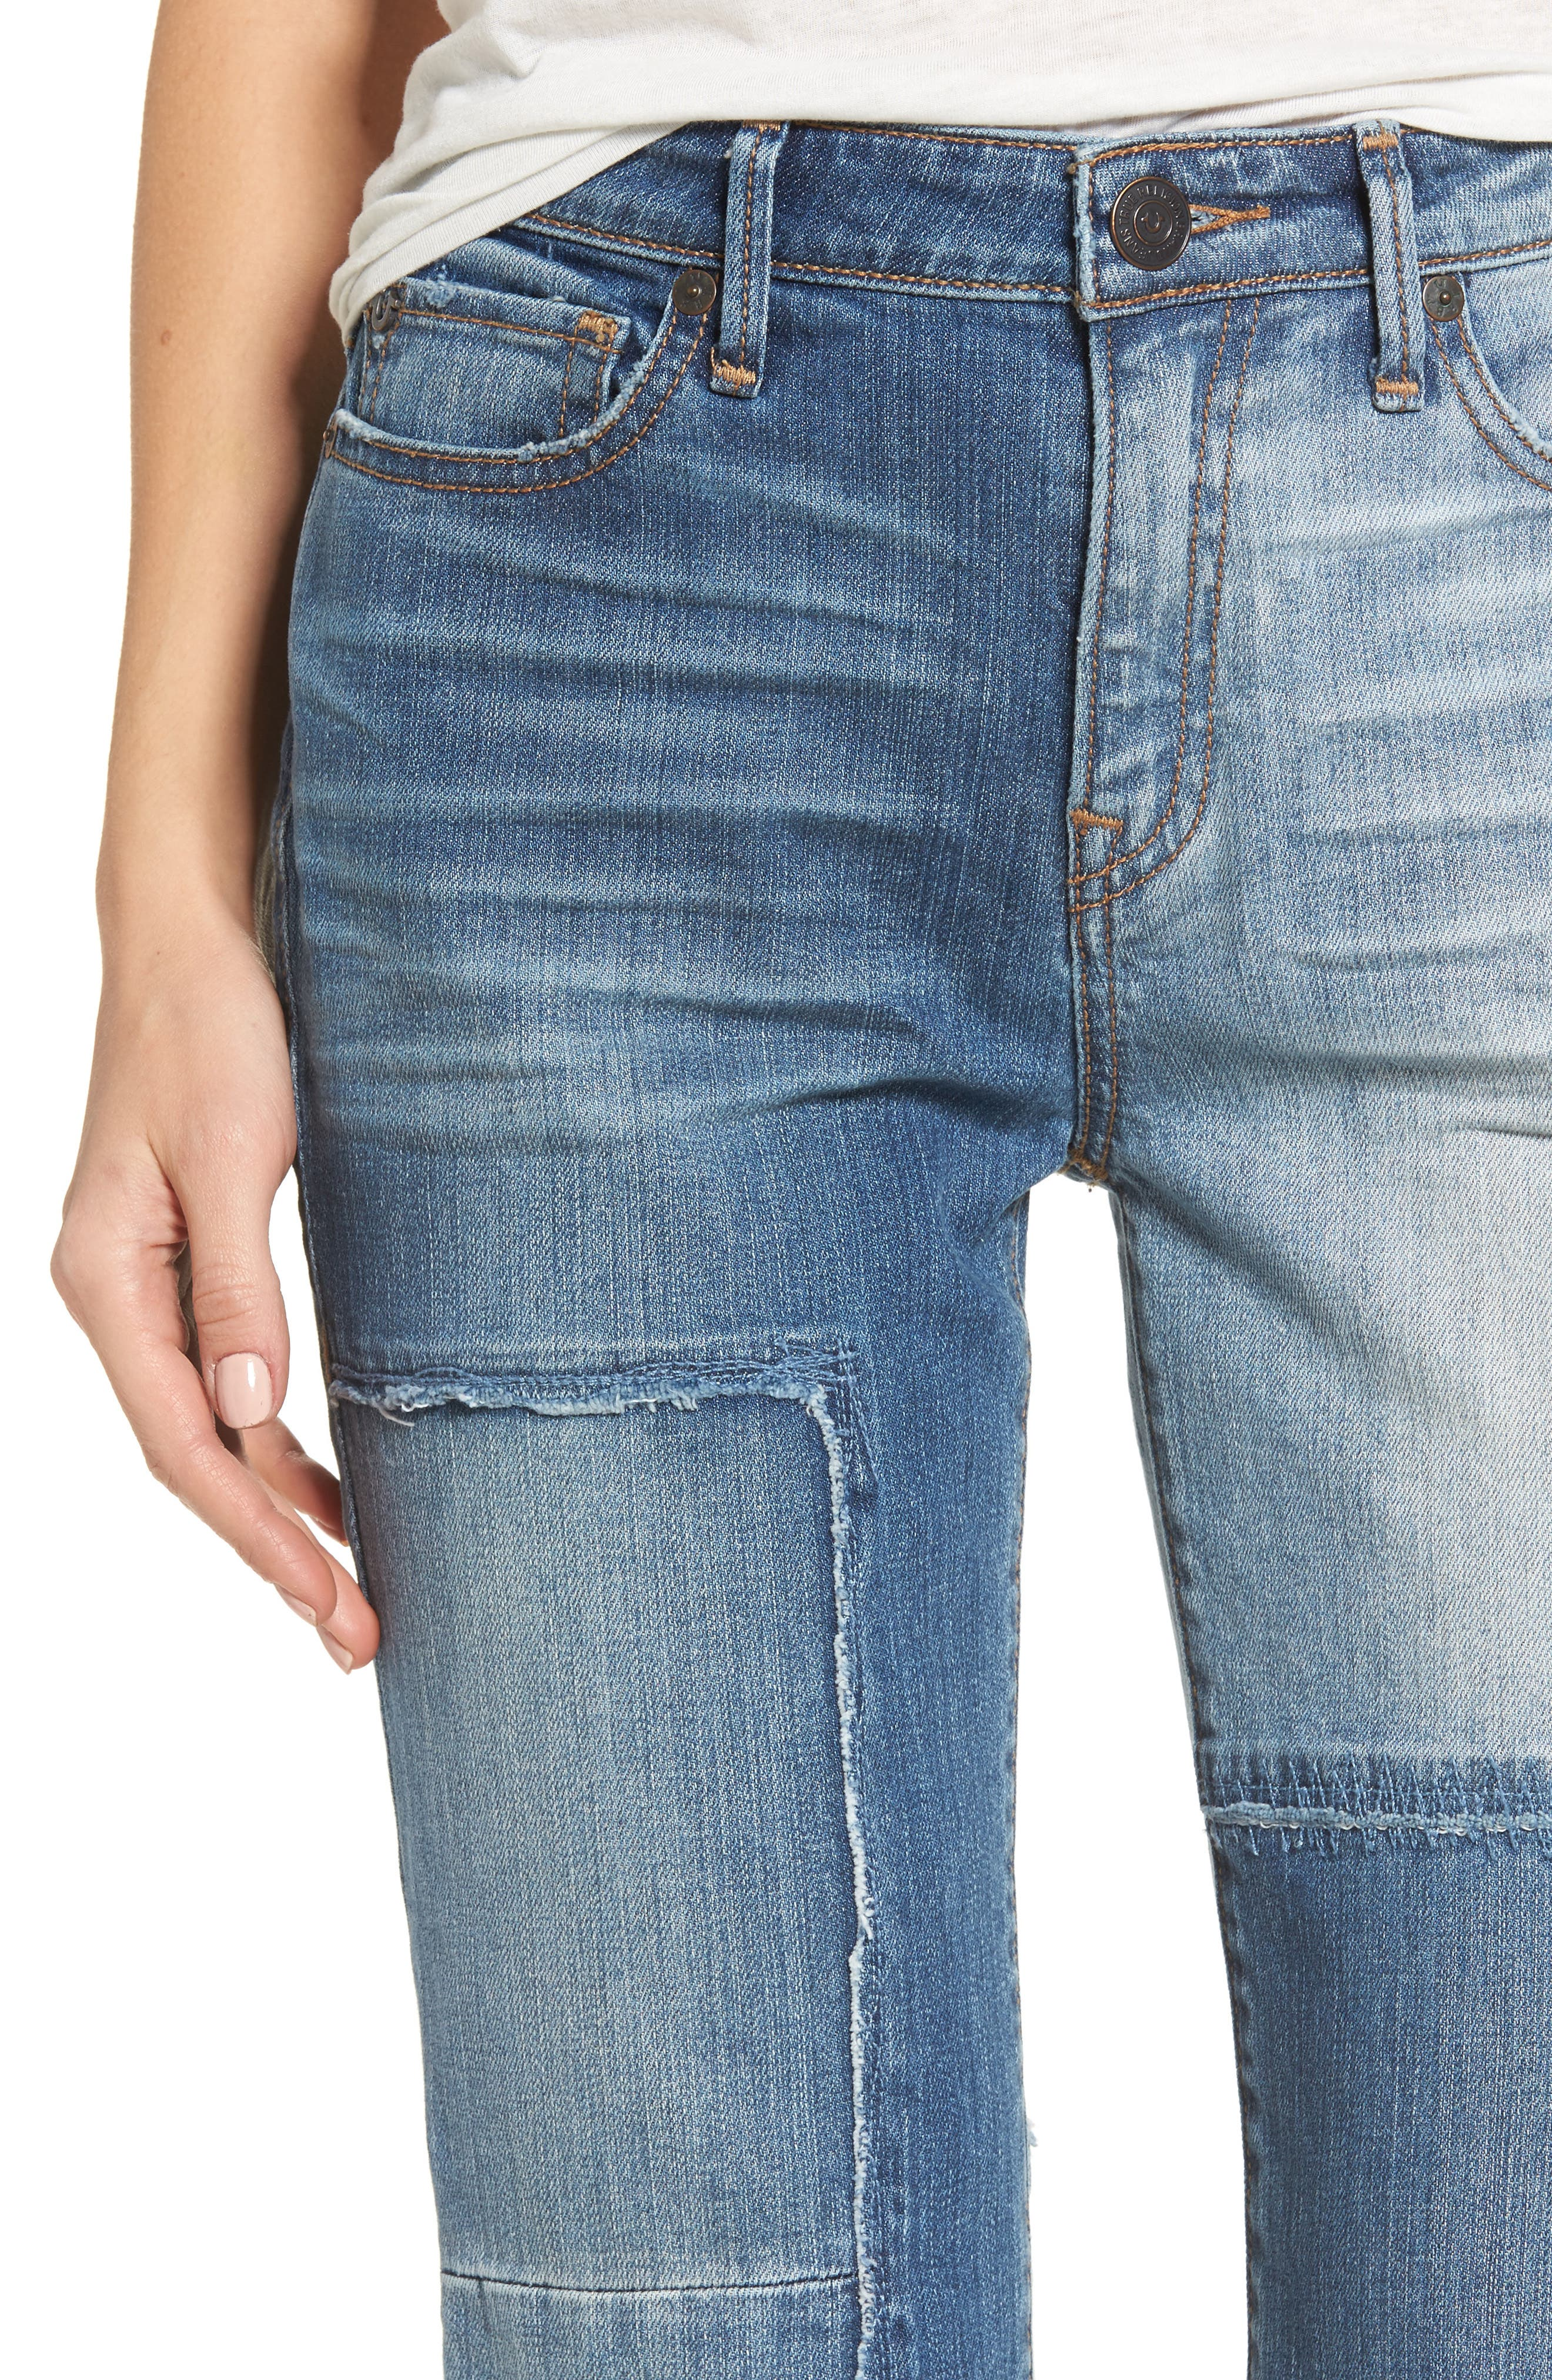 Stovepipe High Waist Crop Jeans,                             Alternate thumbnail 4, color,                             401